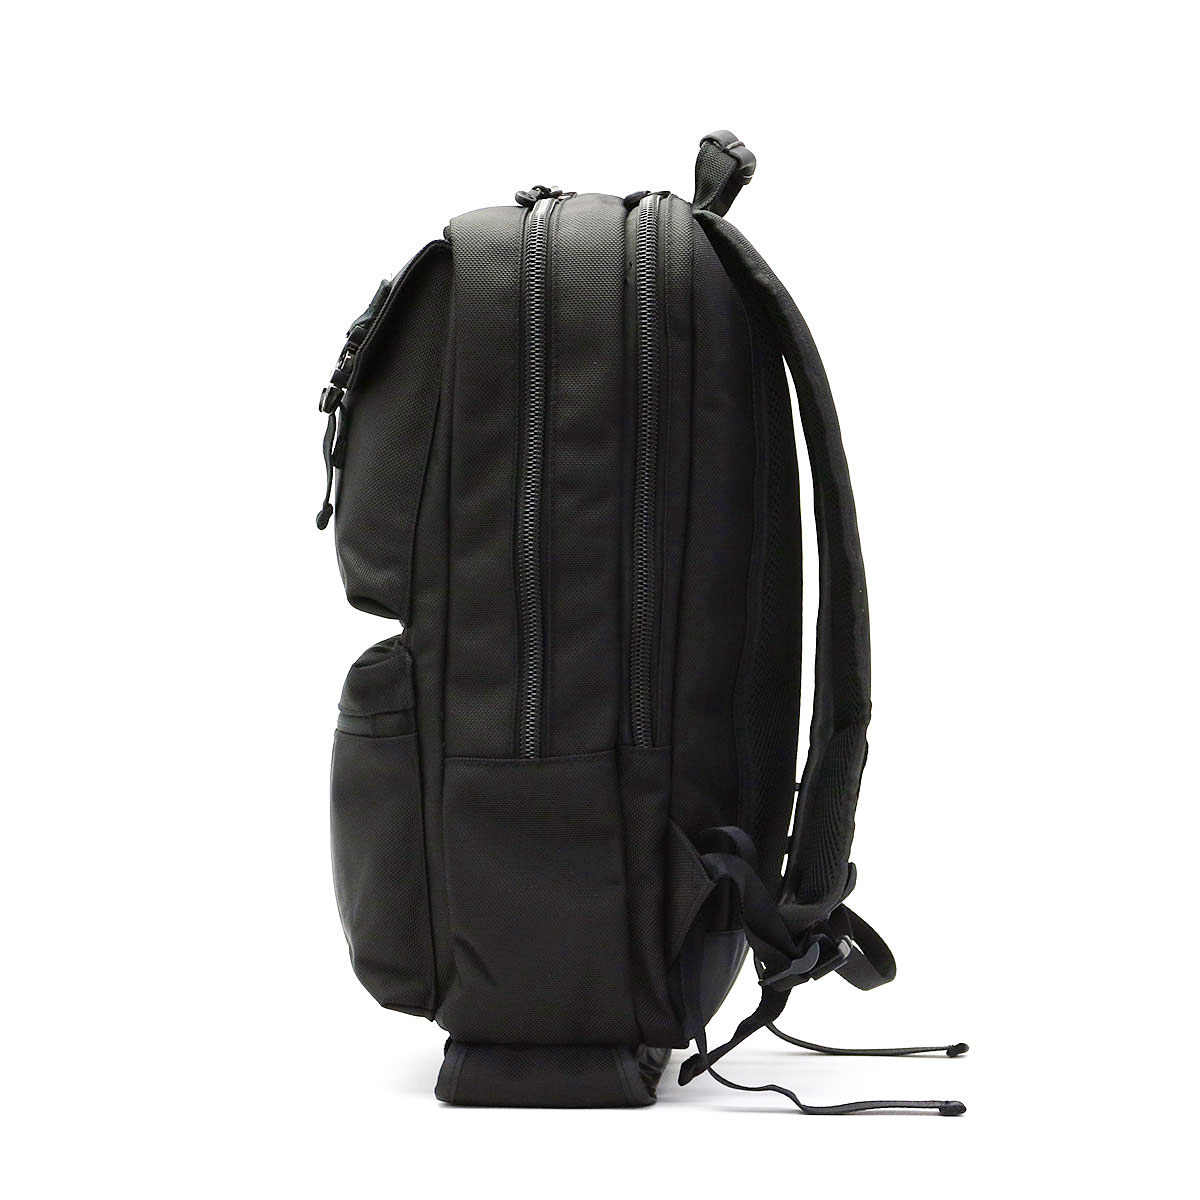 C6 business backpack FIELD PACK rucksack backpack business bag commuter PC storage B4 correspondence Men's